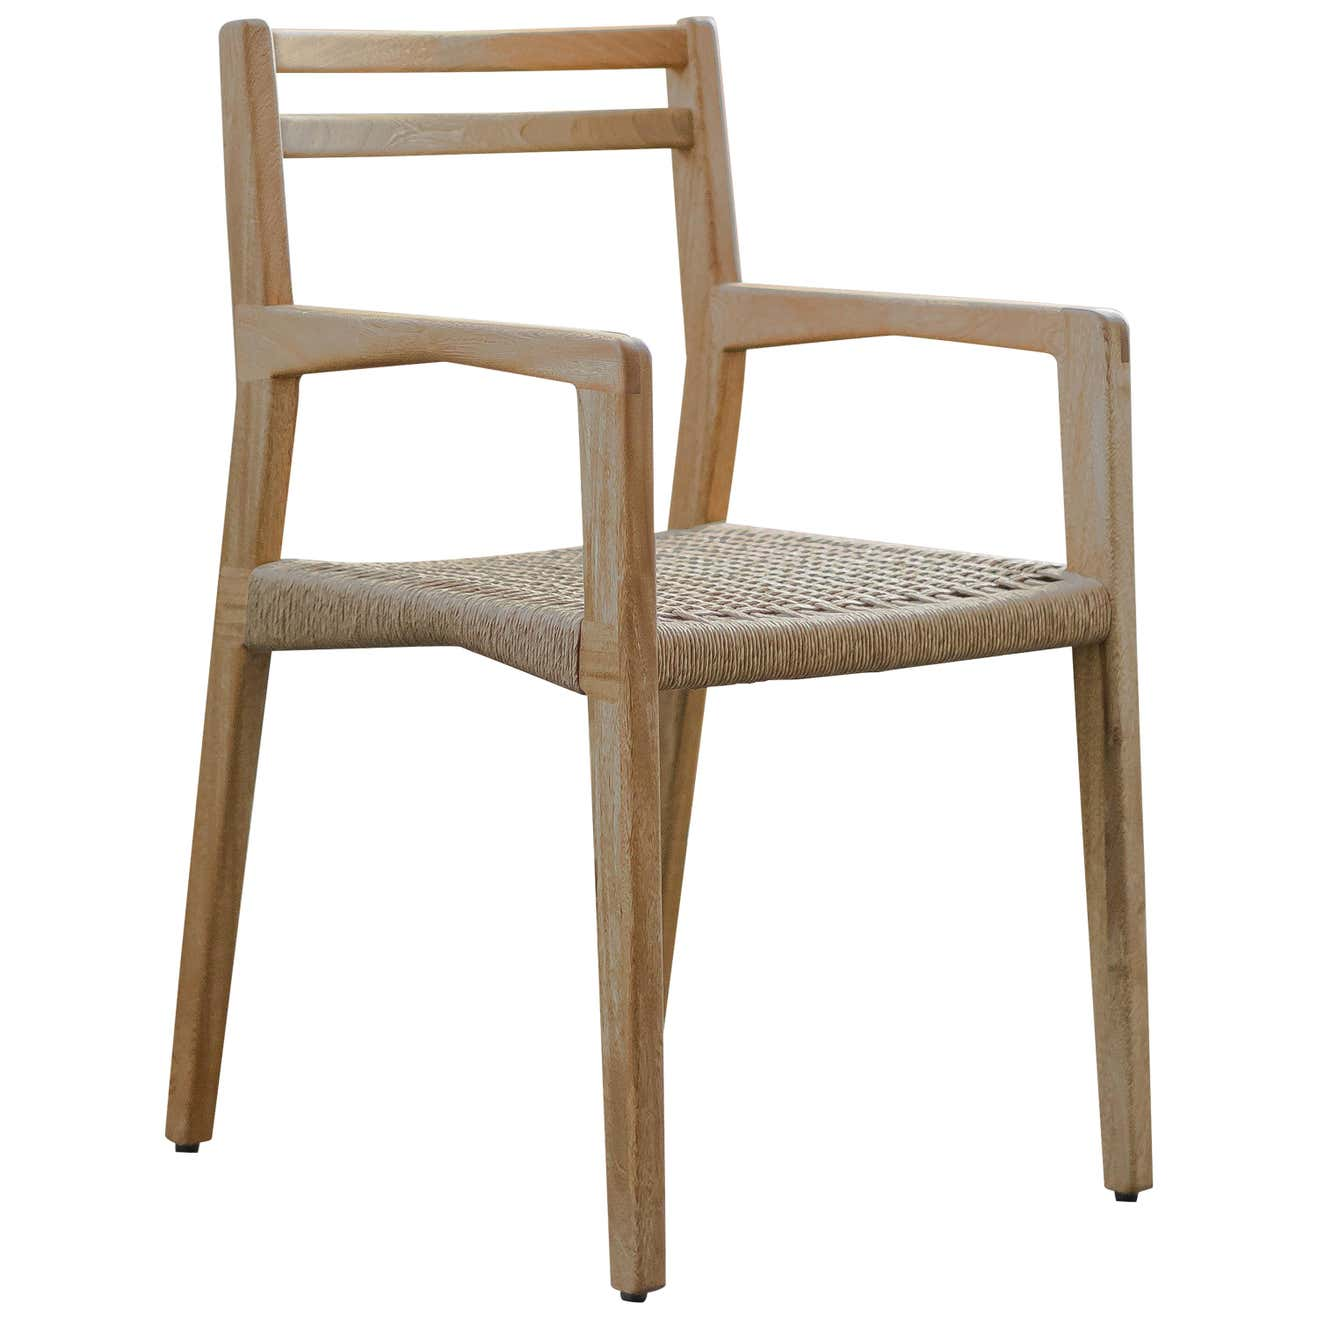 Wooden Chair C Collection with Armrest